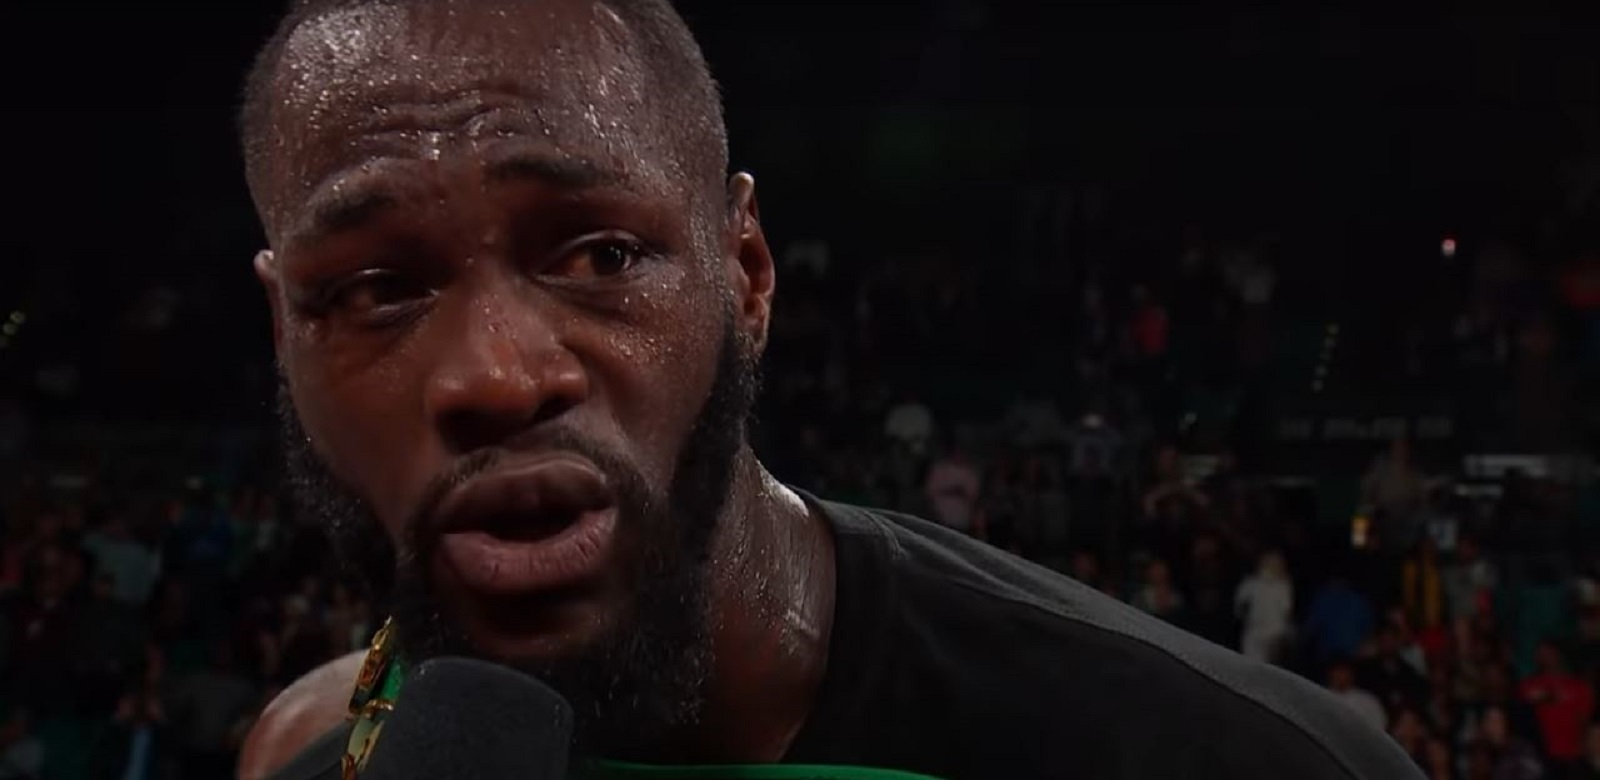 Deontay Wilder Angry and Focused On One Thing